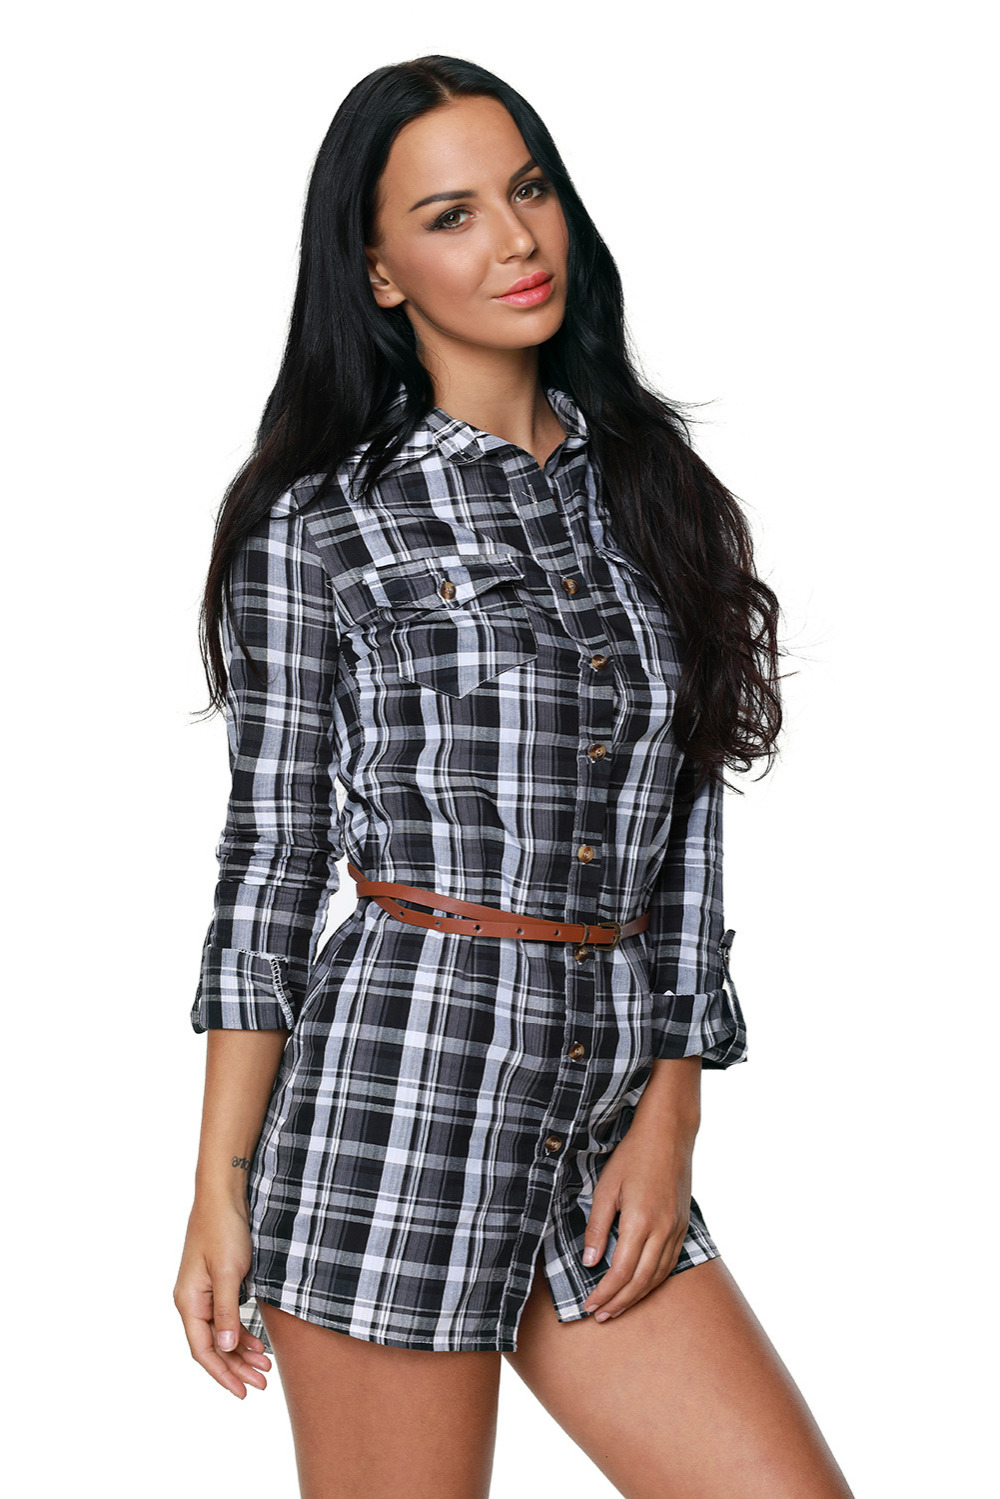 casual Woman s Clothes spring autumn long sleeves t shirt style Fashion Loose Black White Plaid